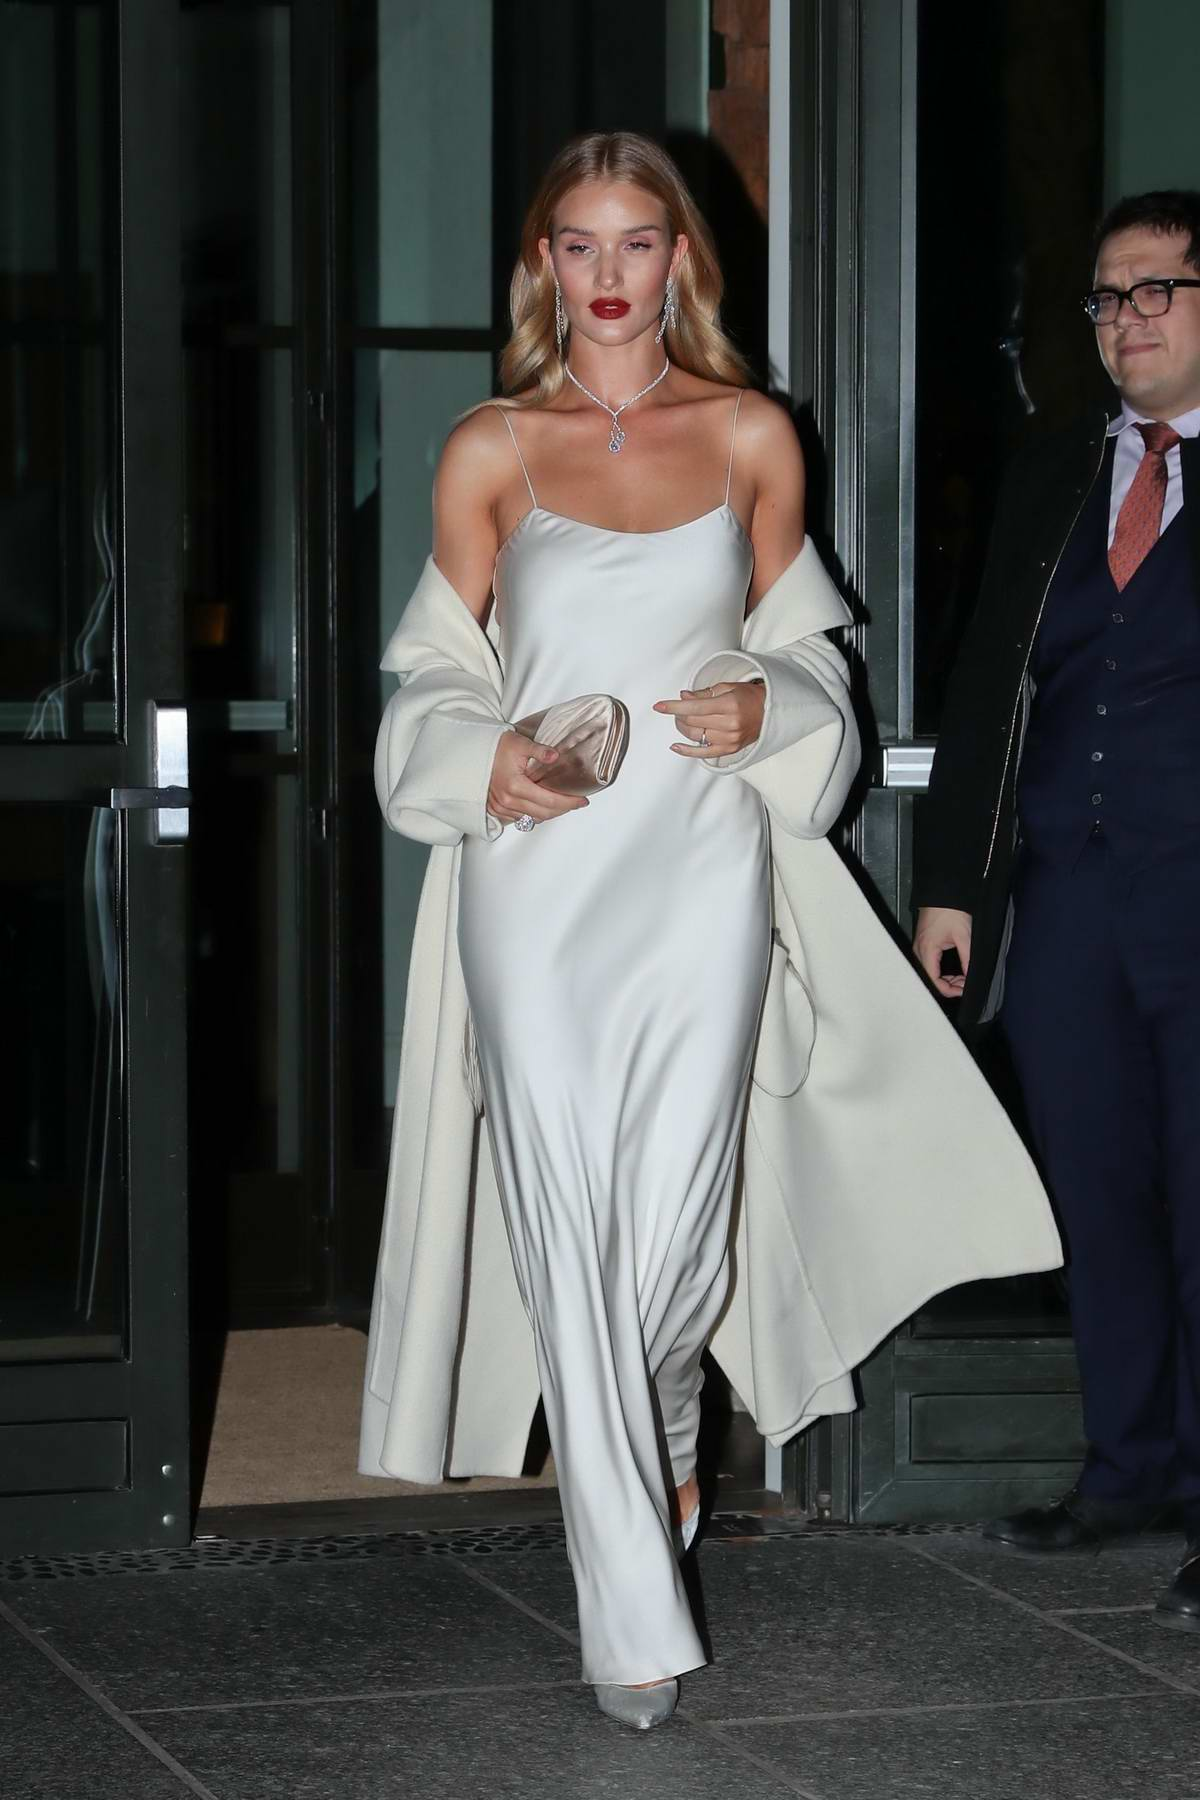 Rosie Huntington Whiteley Looks Stunning In A White Gown As Leaves